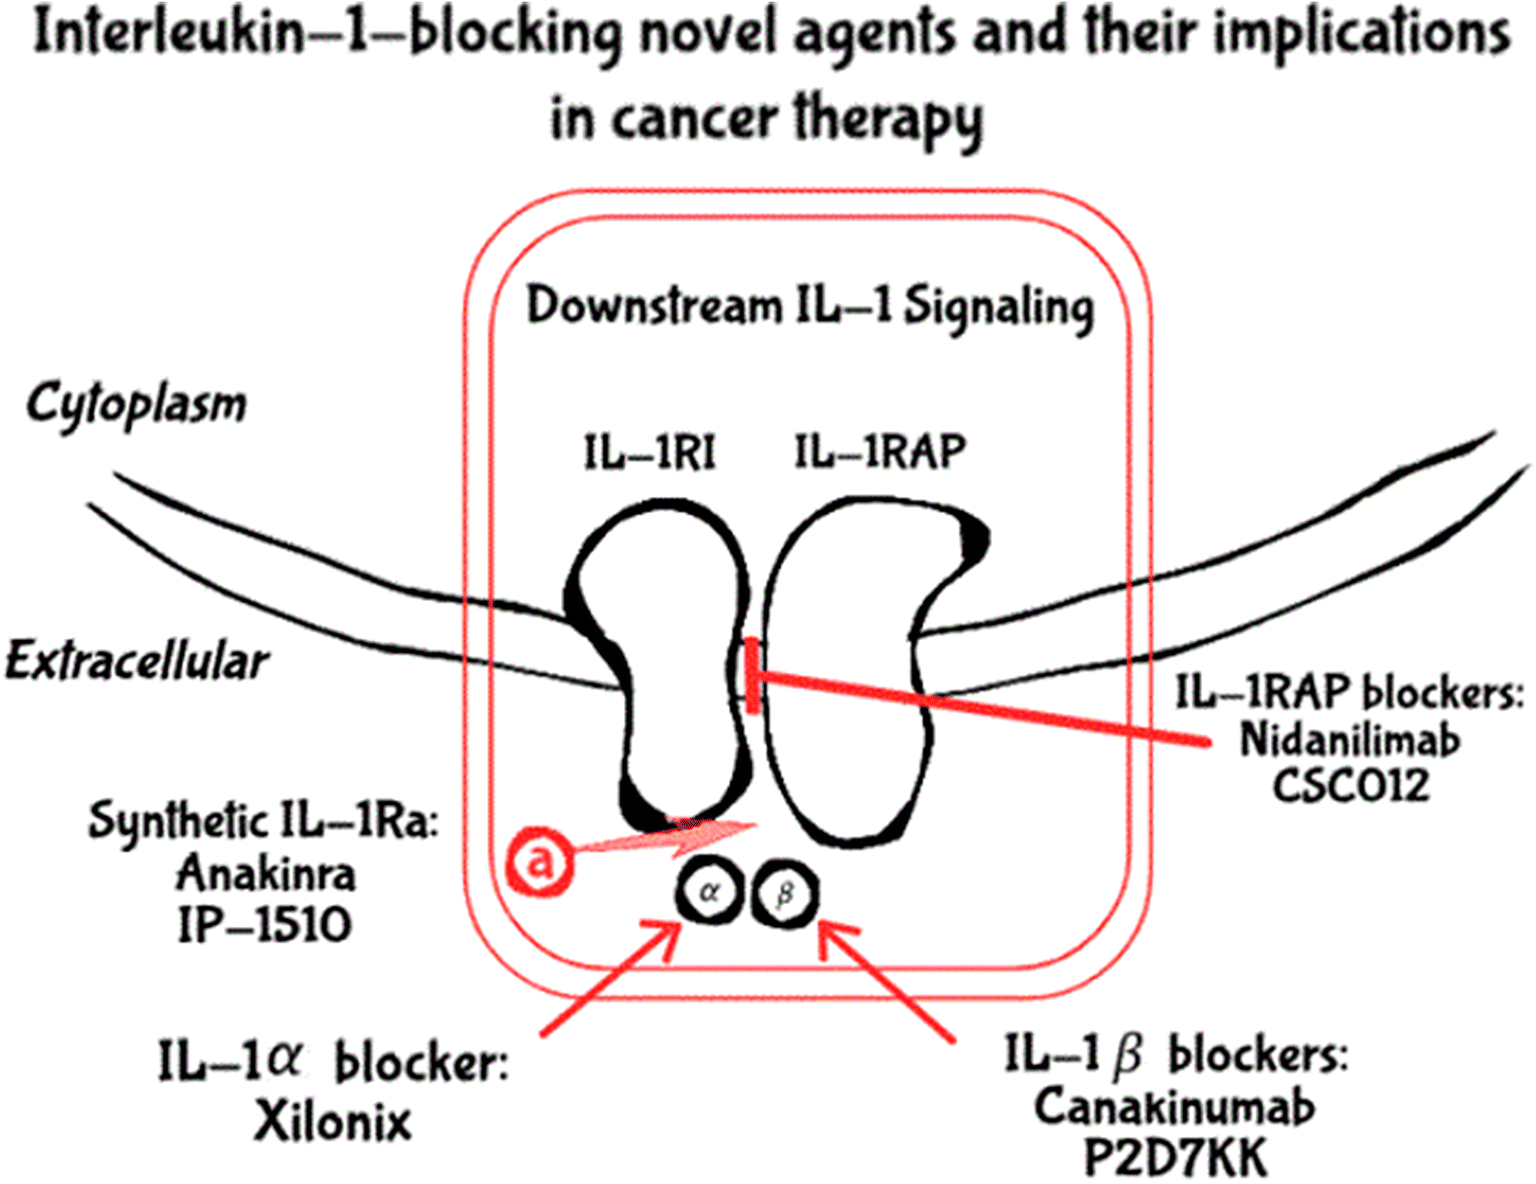 The Role of Interleukin-1 in the Pathogenesis of Cancer and